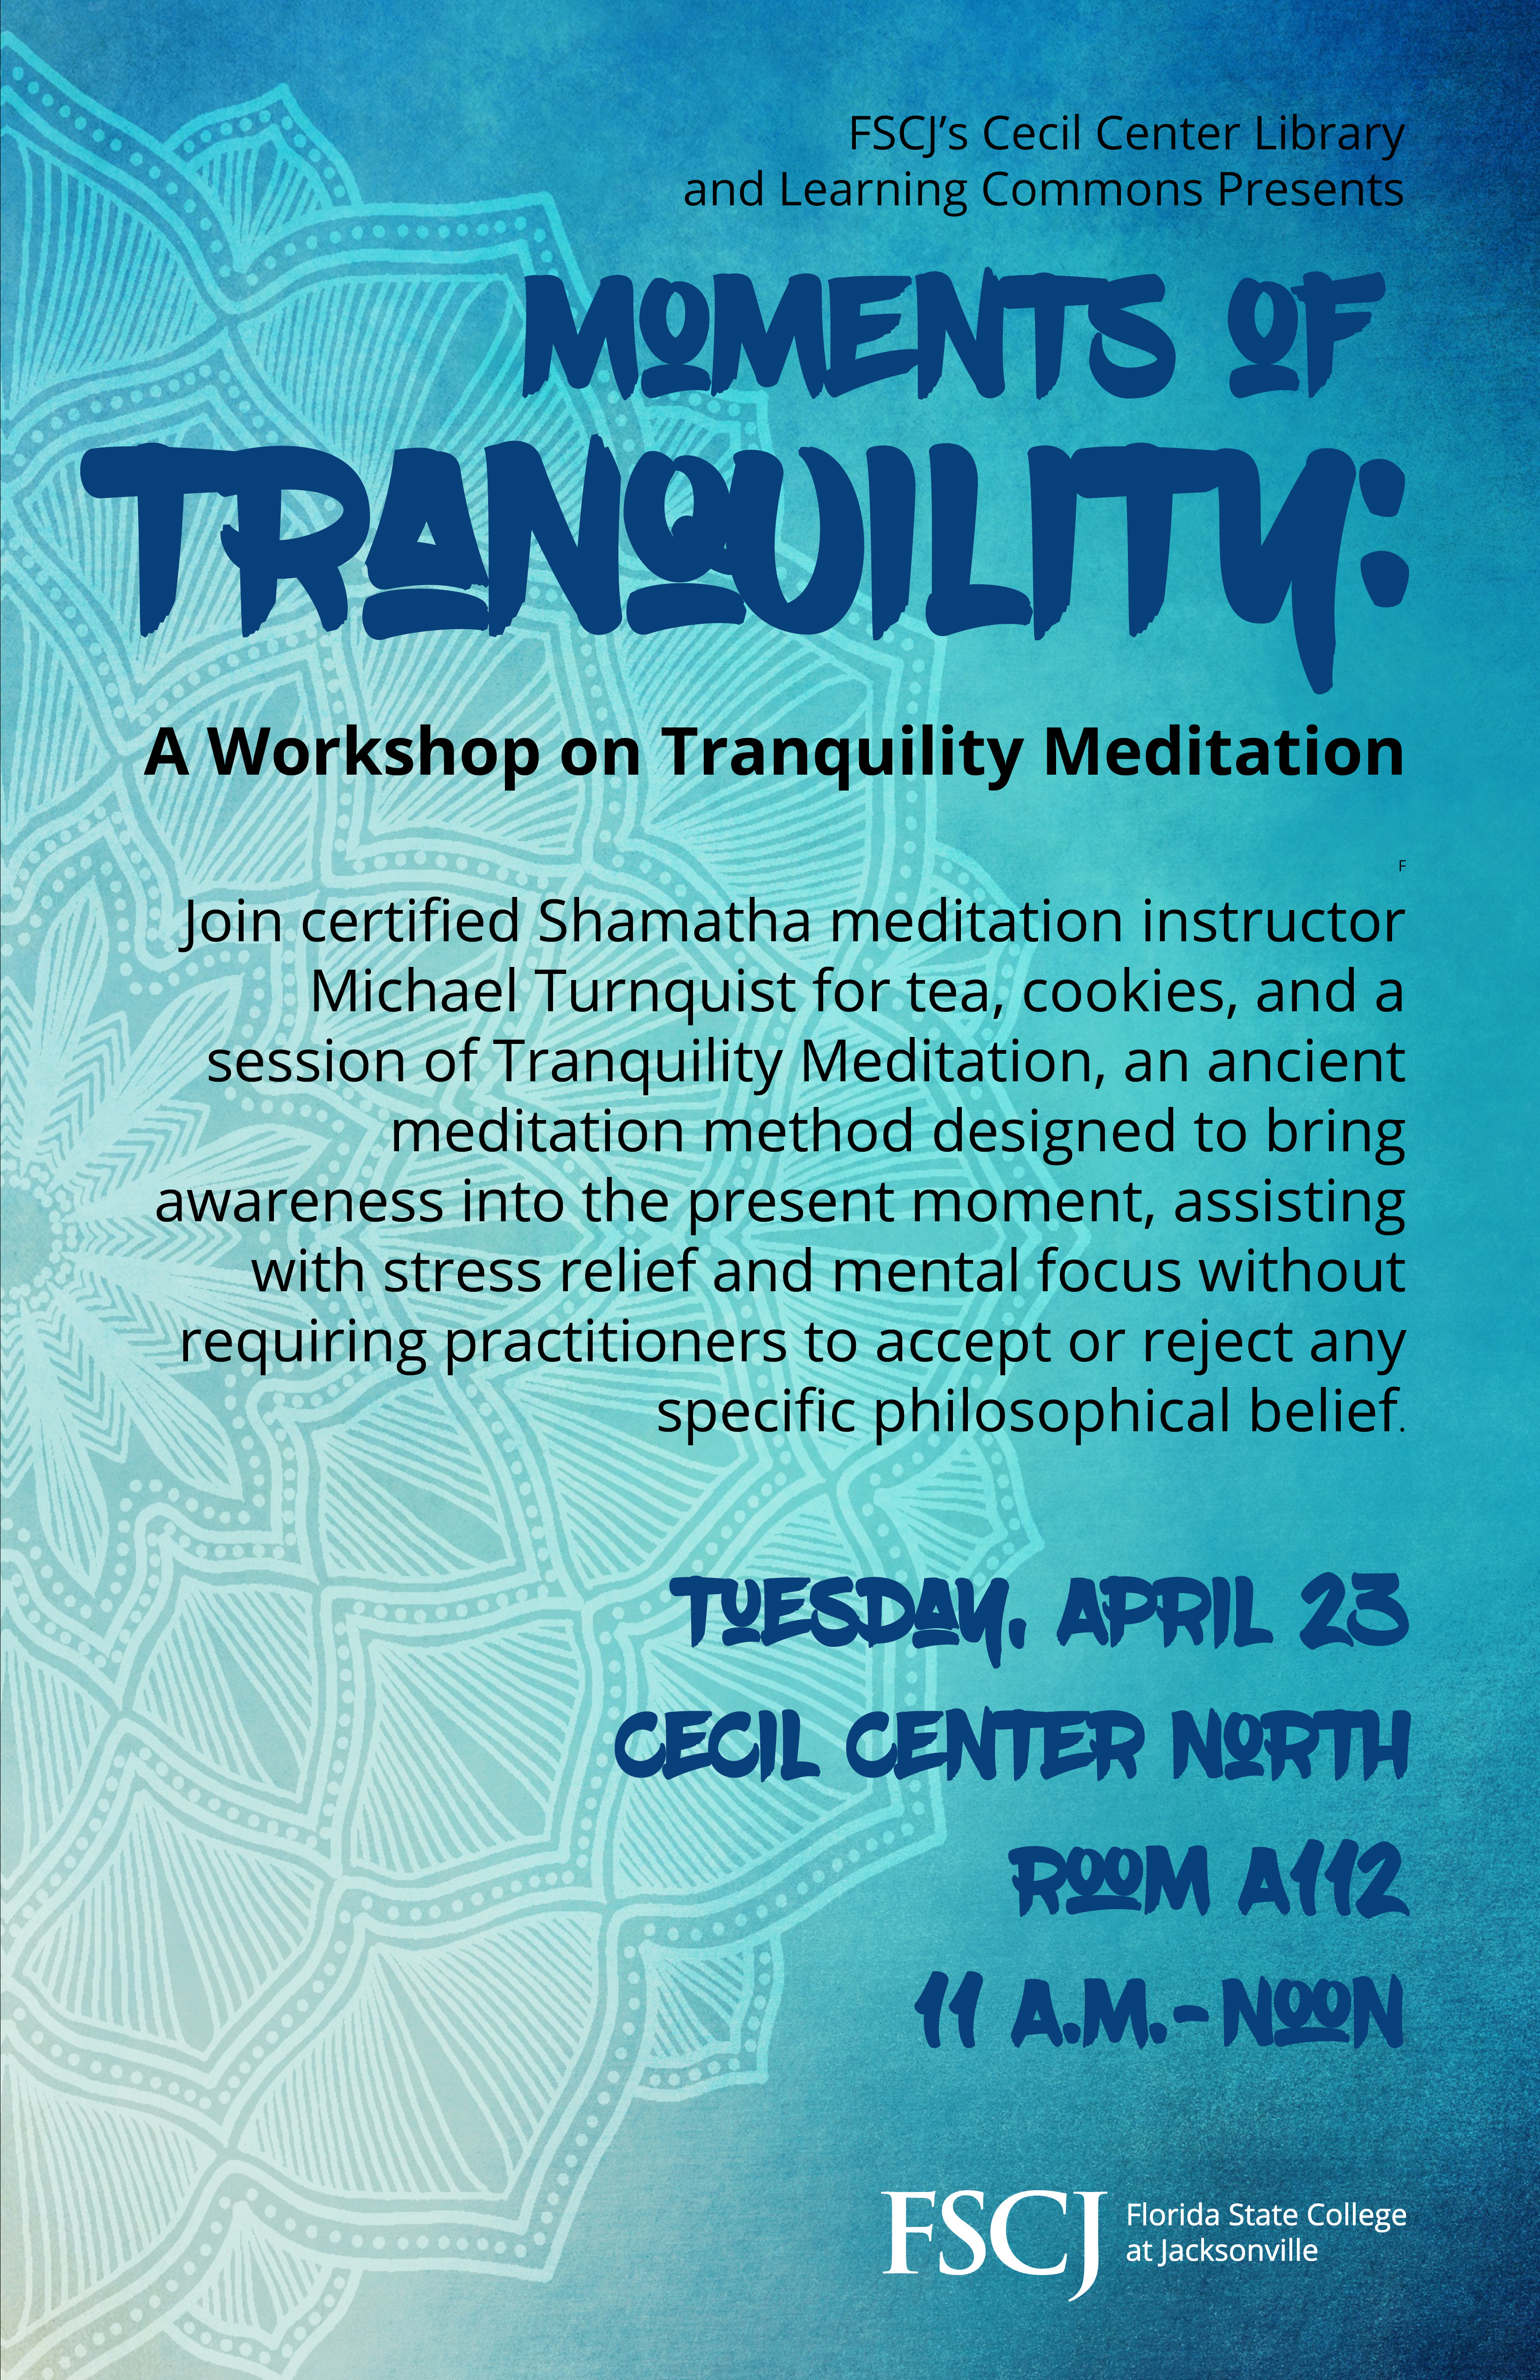 Moments of Tranquility: A Workshop on Tranquility Meditation